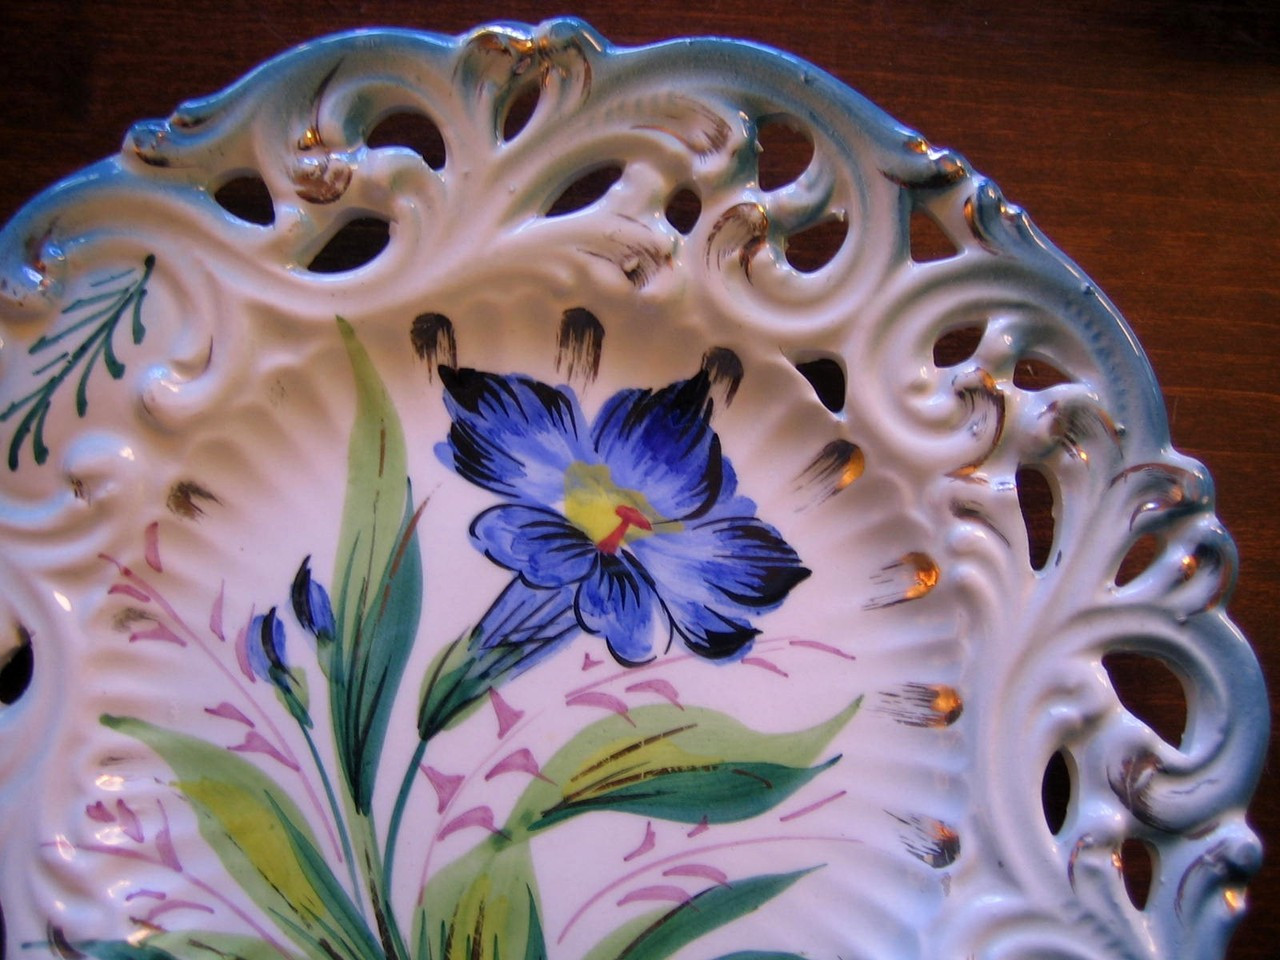 Vintage Decorative Plate - Aqua Pierced Blue Flower Gold Leaf Handpainted in Italy Edge www.DecorativeDishes.net